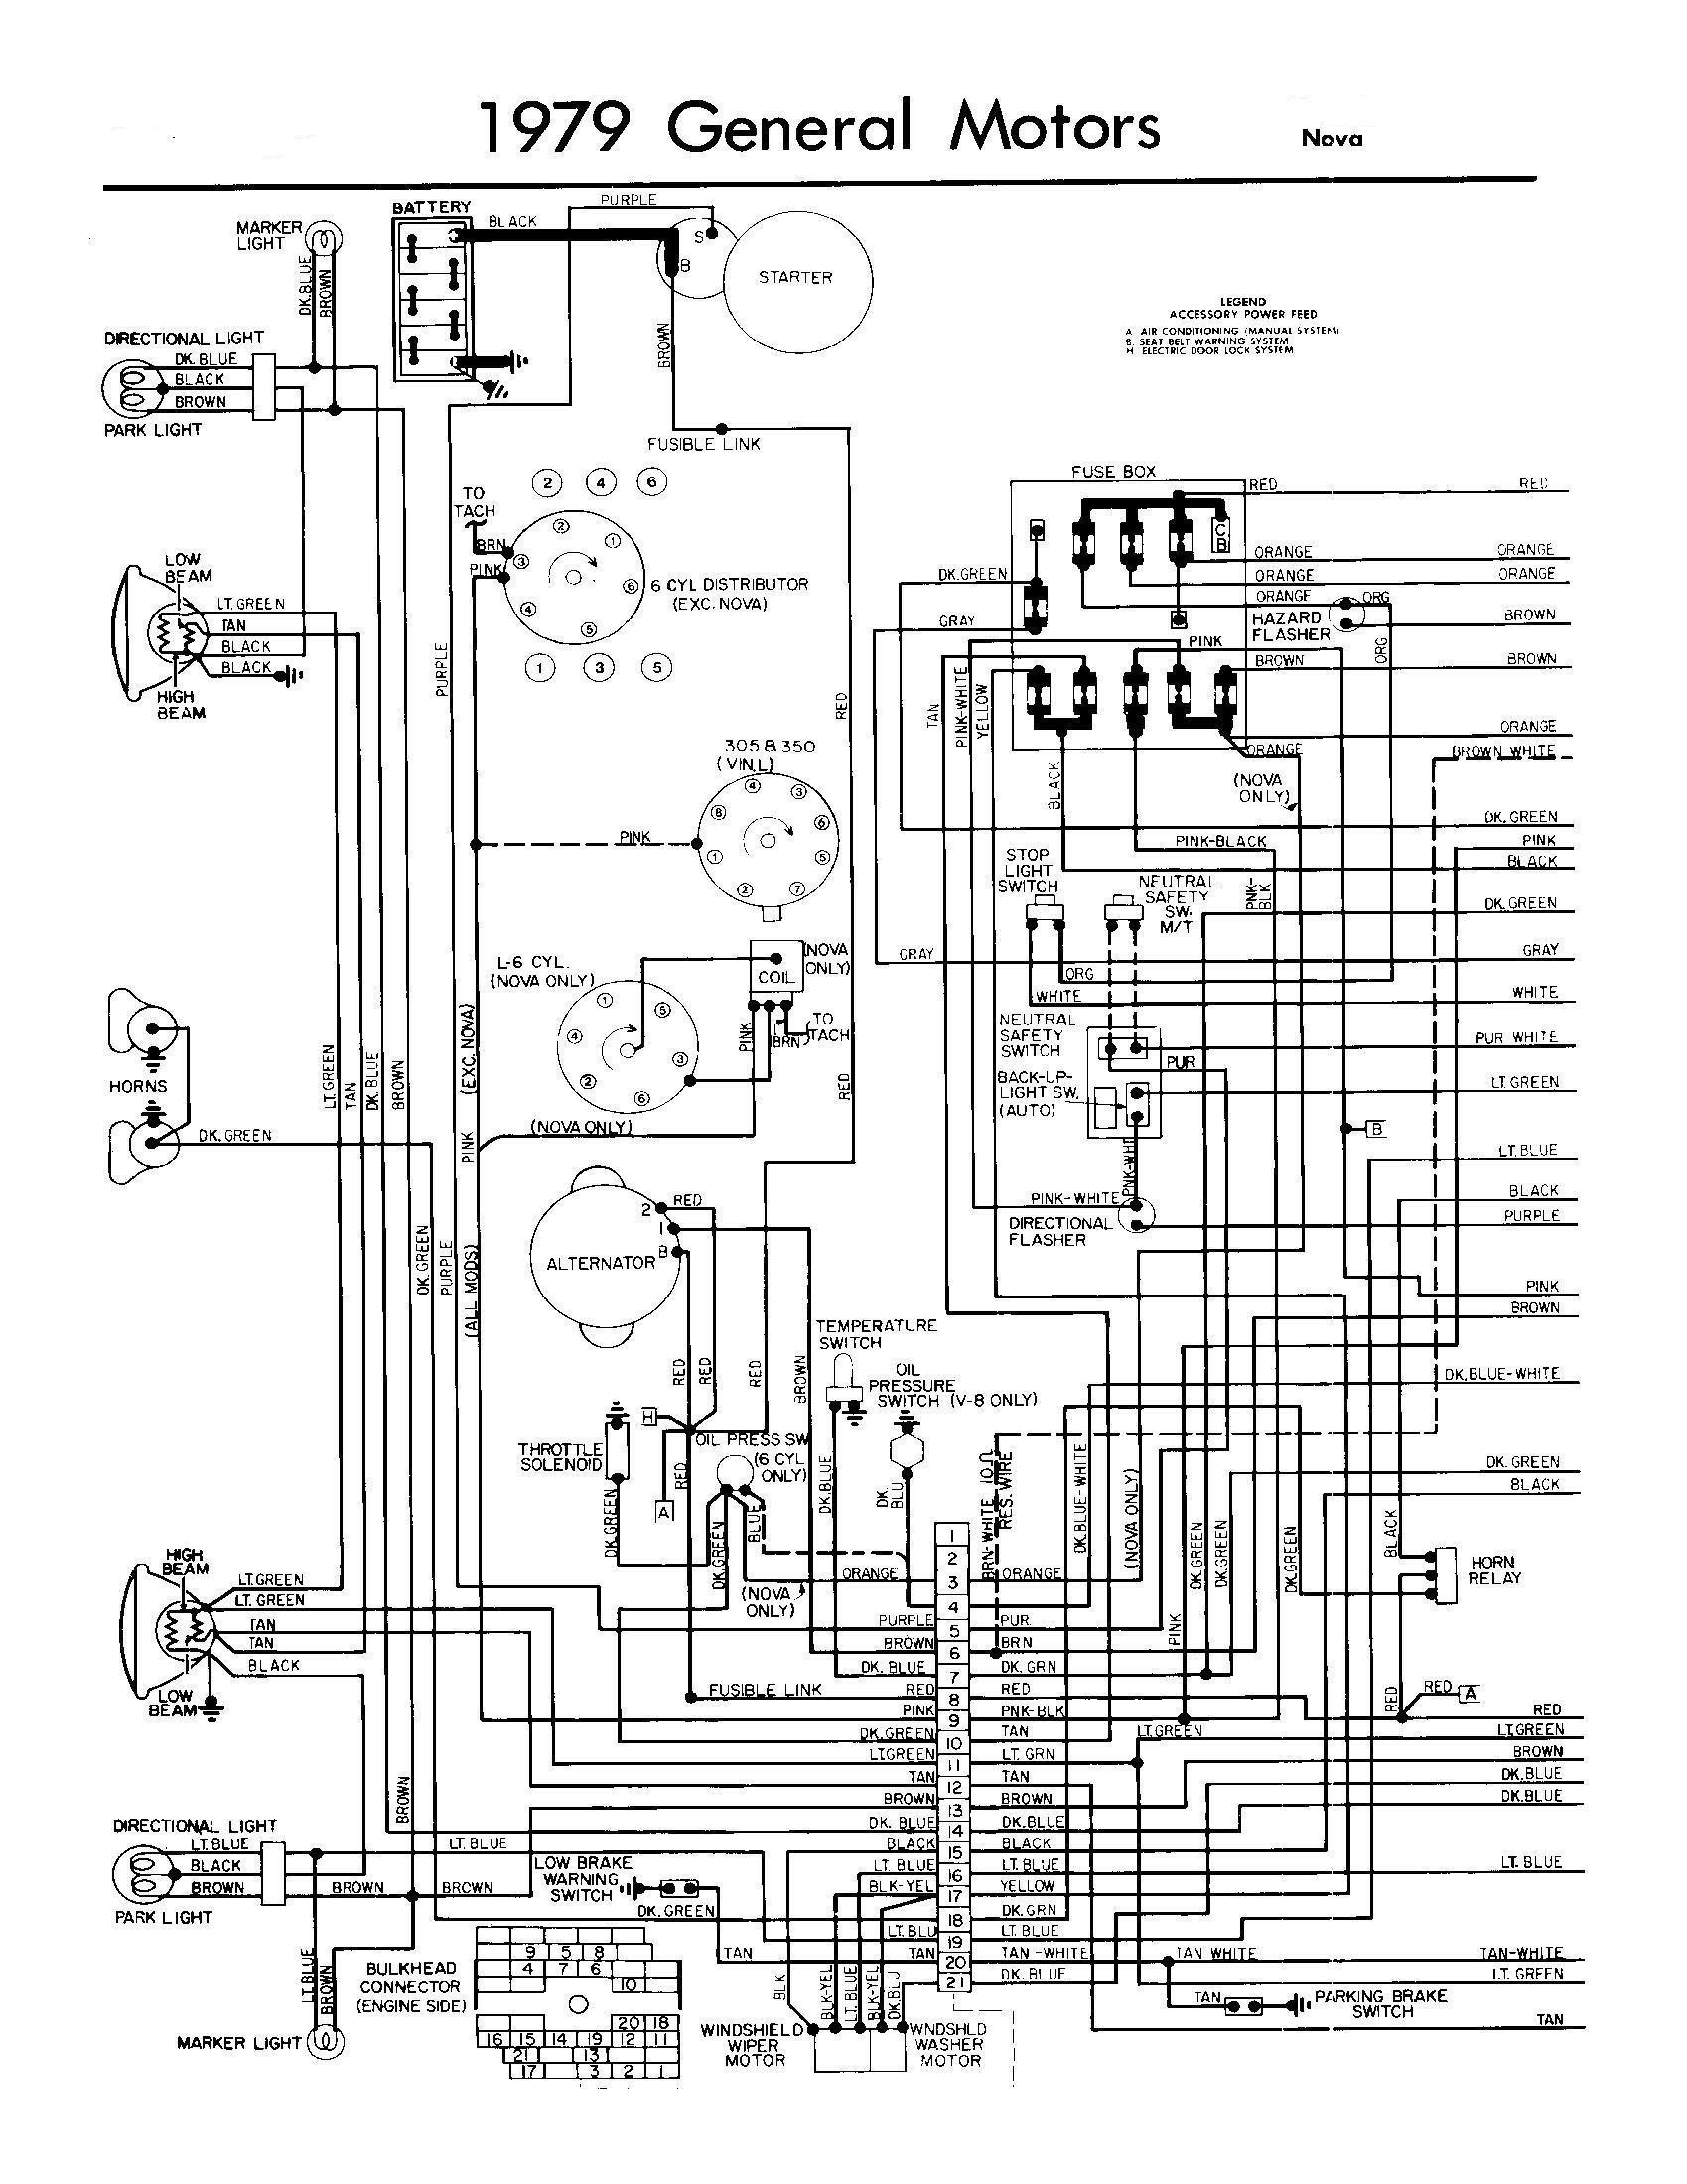 heating wiring diagrams y plan 2006 nissan 350z diagram daihatsu charade please foneplanet de 1g dsm headlight best library rh 140 princestaash org